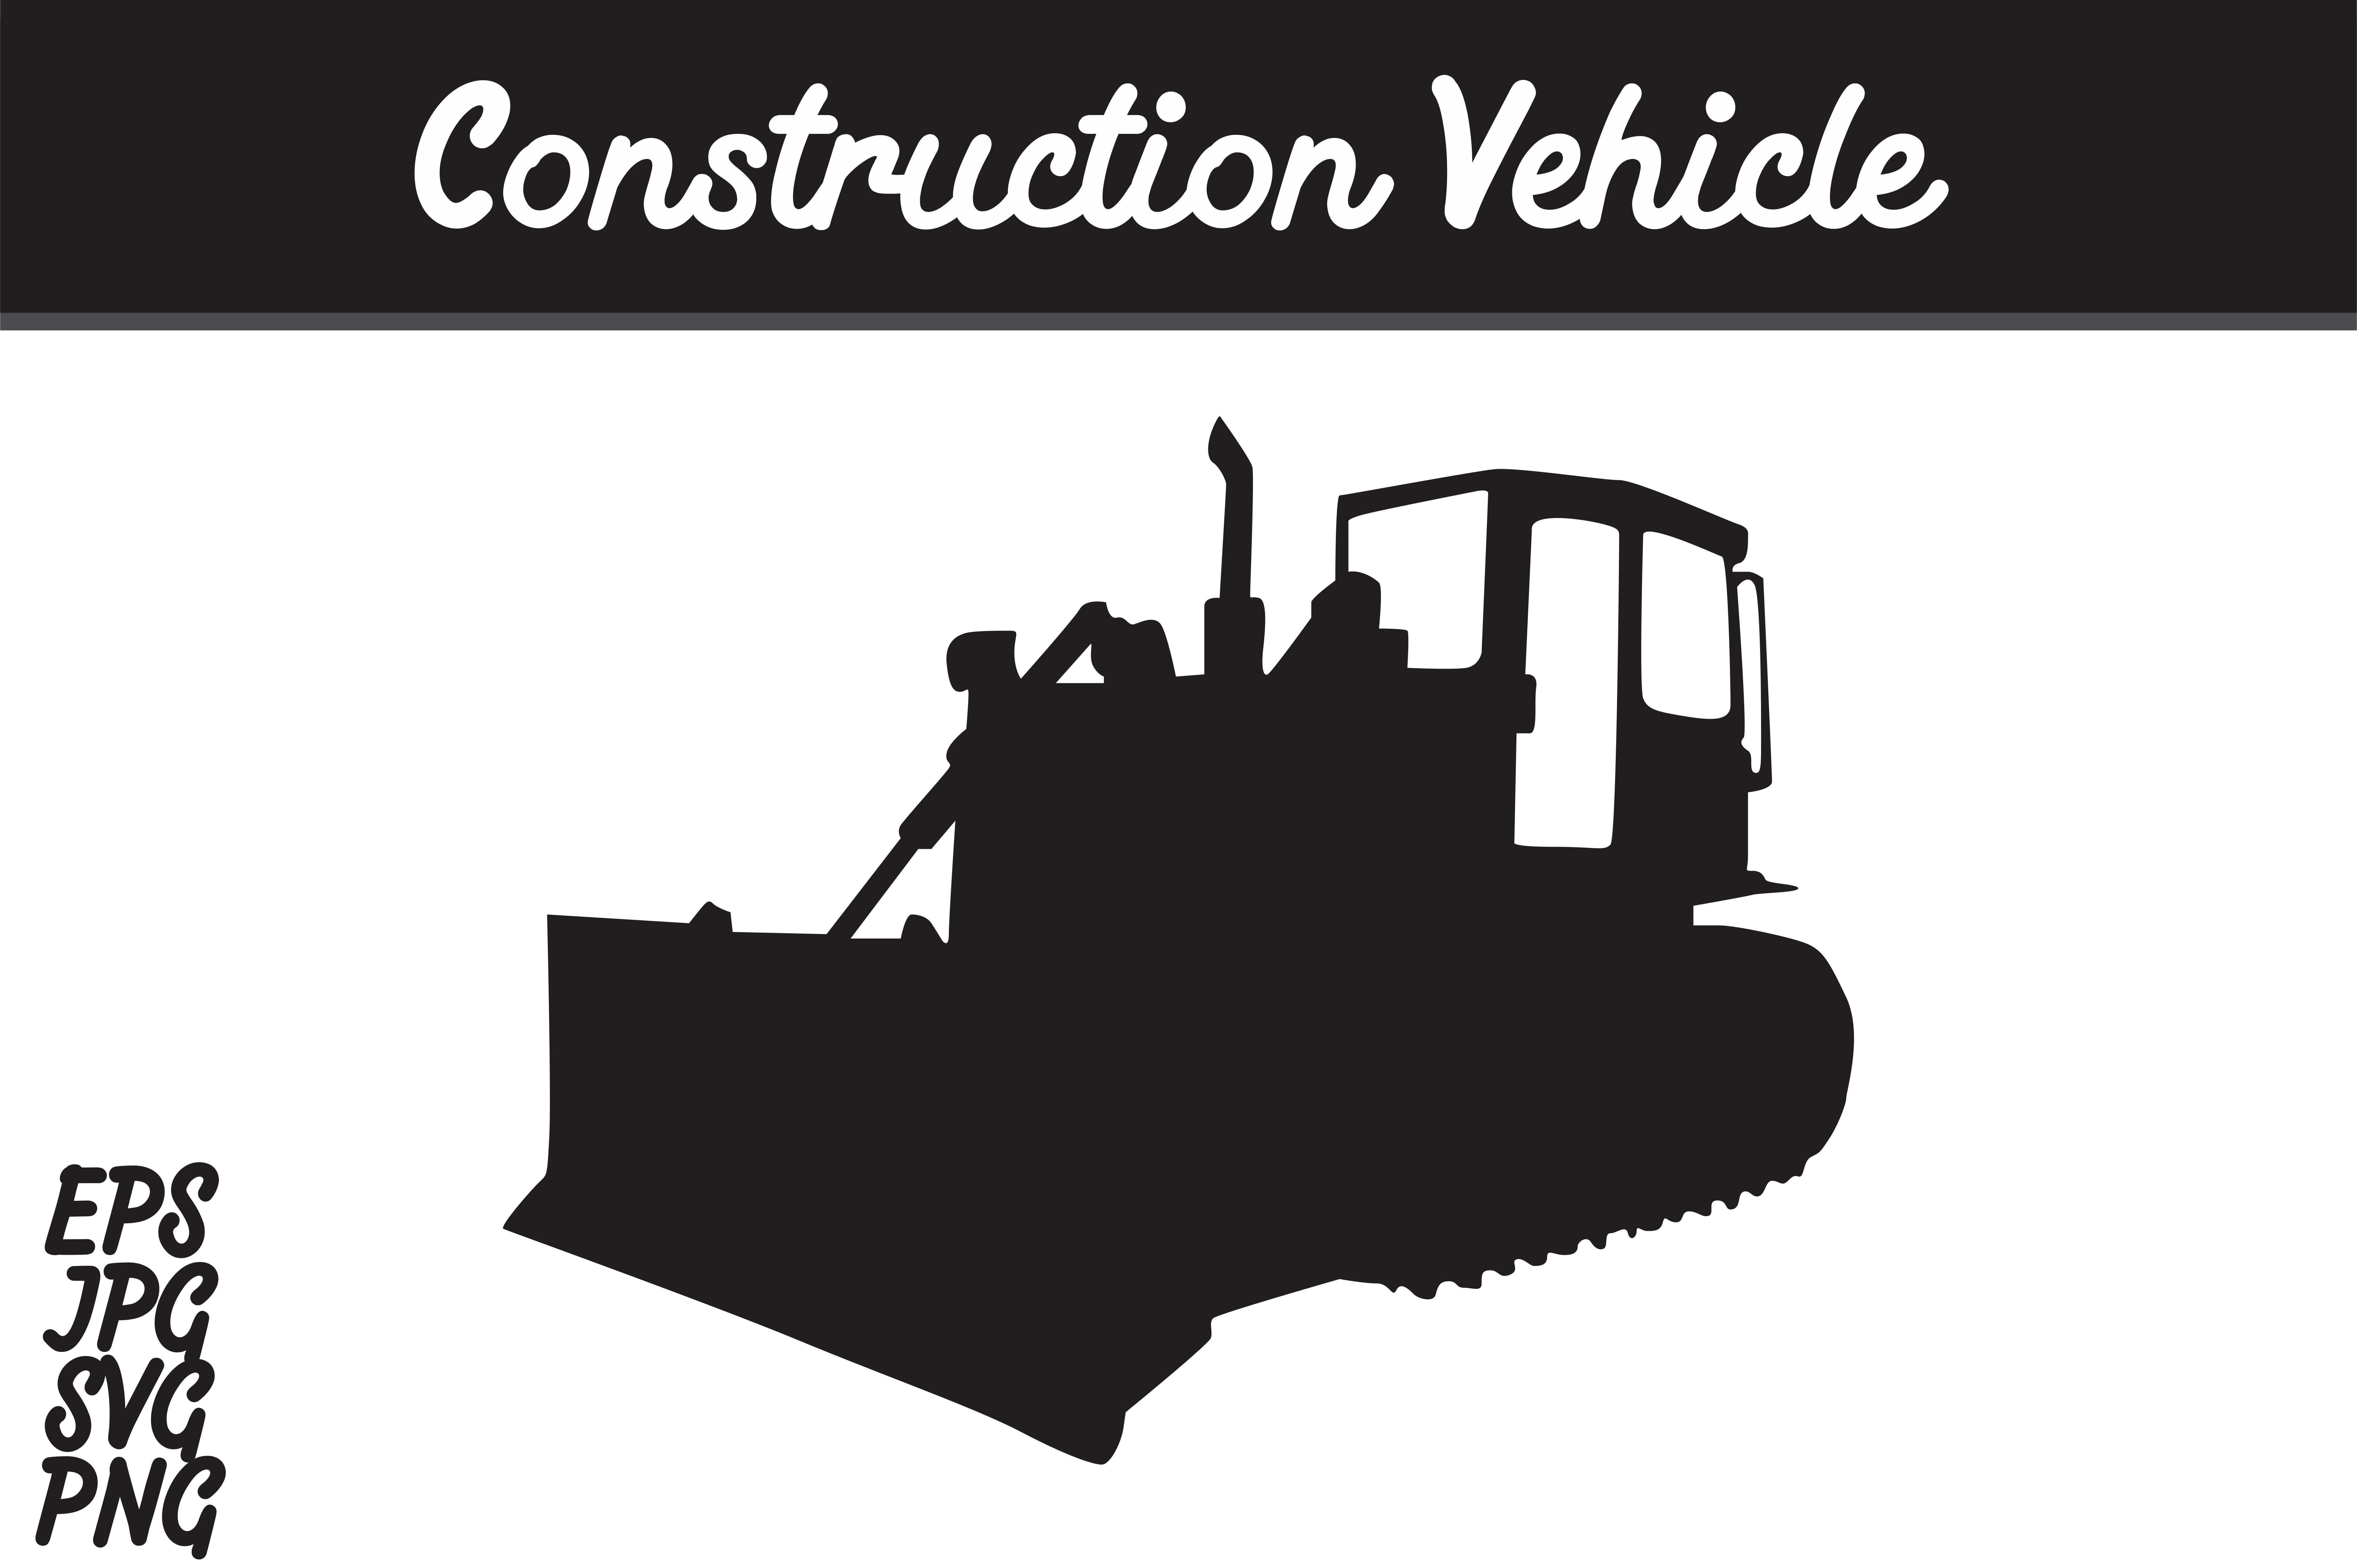 Download Free Construction Vehicle Silhouette Svg Vector Image Graphic By for Cricut Explore, Silhouette and other cutting machines.